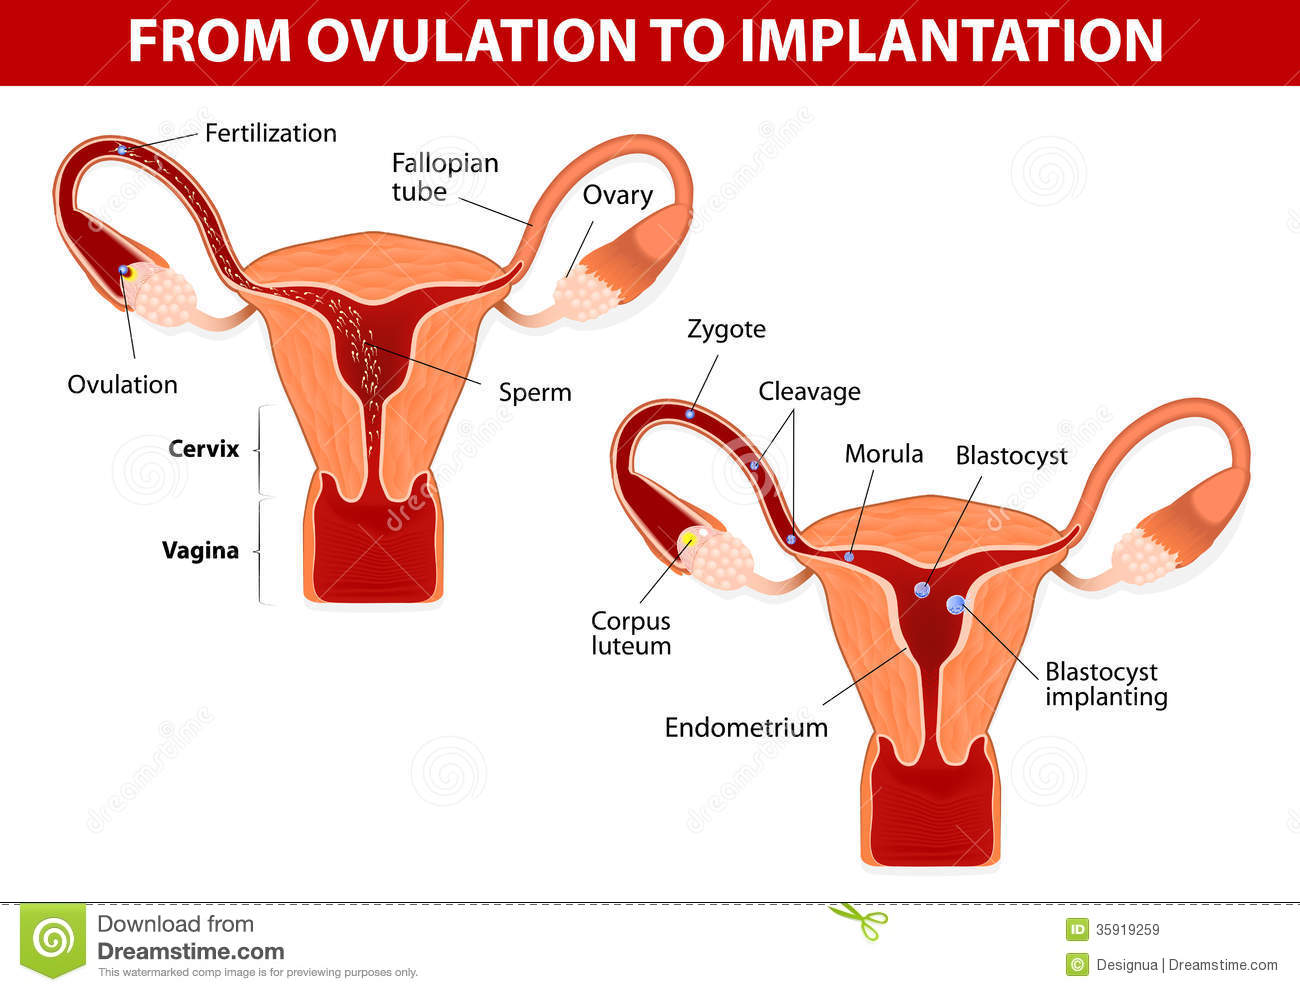 of the embryo. Fertilization. From ovulation to implantation